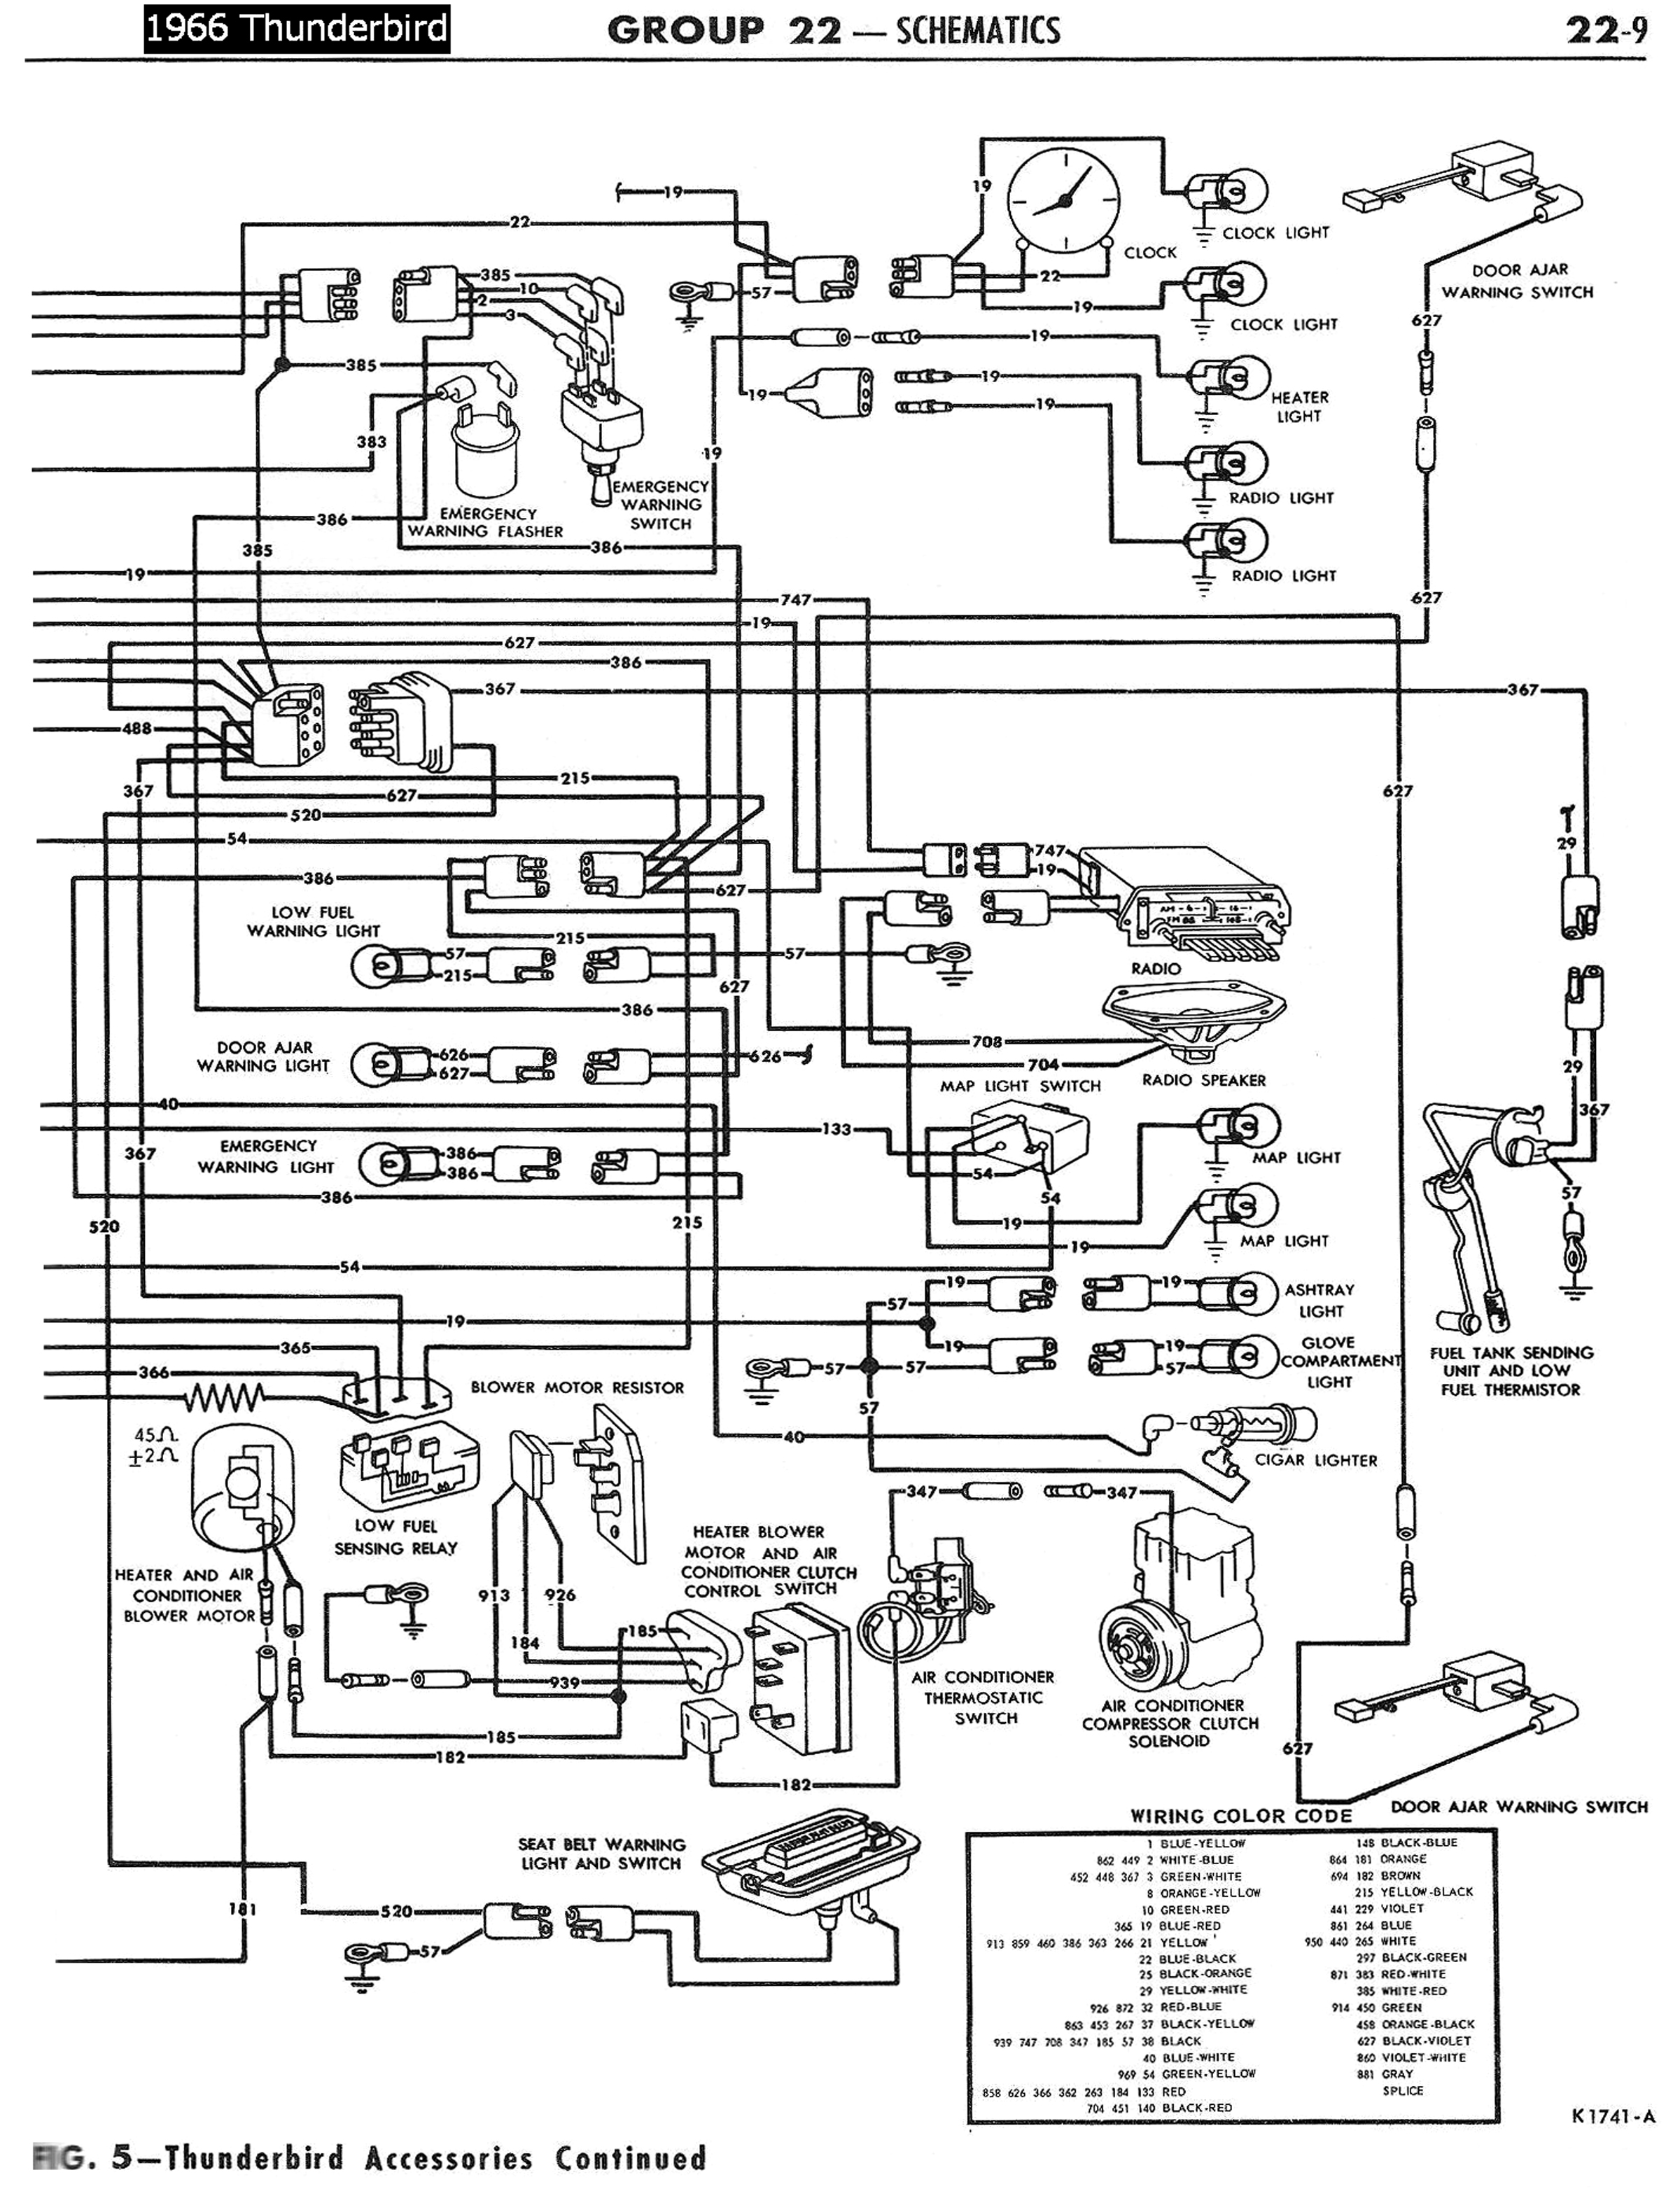 1965 Thunderbird Power Window Wiring Diagram Just Another F100 Harness Get Free Image About 1966 Online Rh 4 9 Aquarium Ag Goyatz De Ford